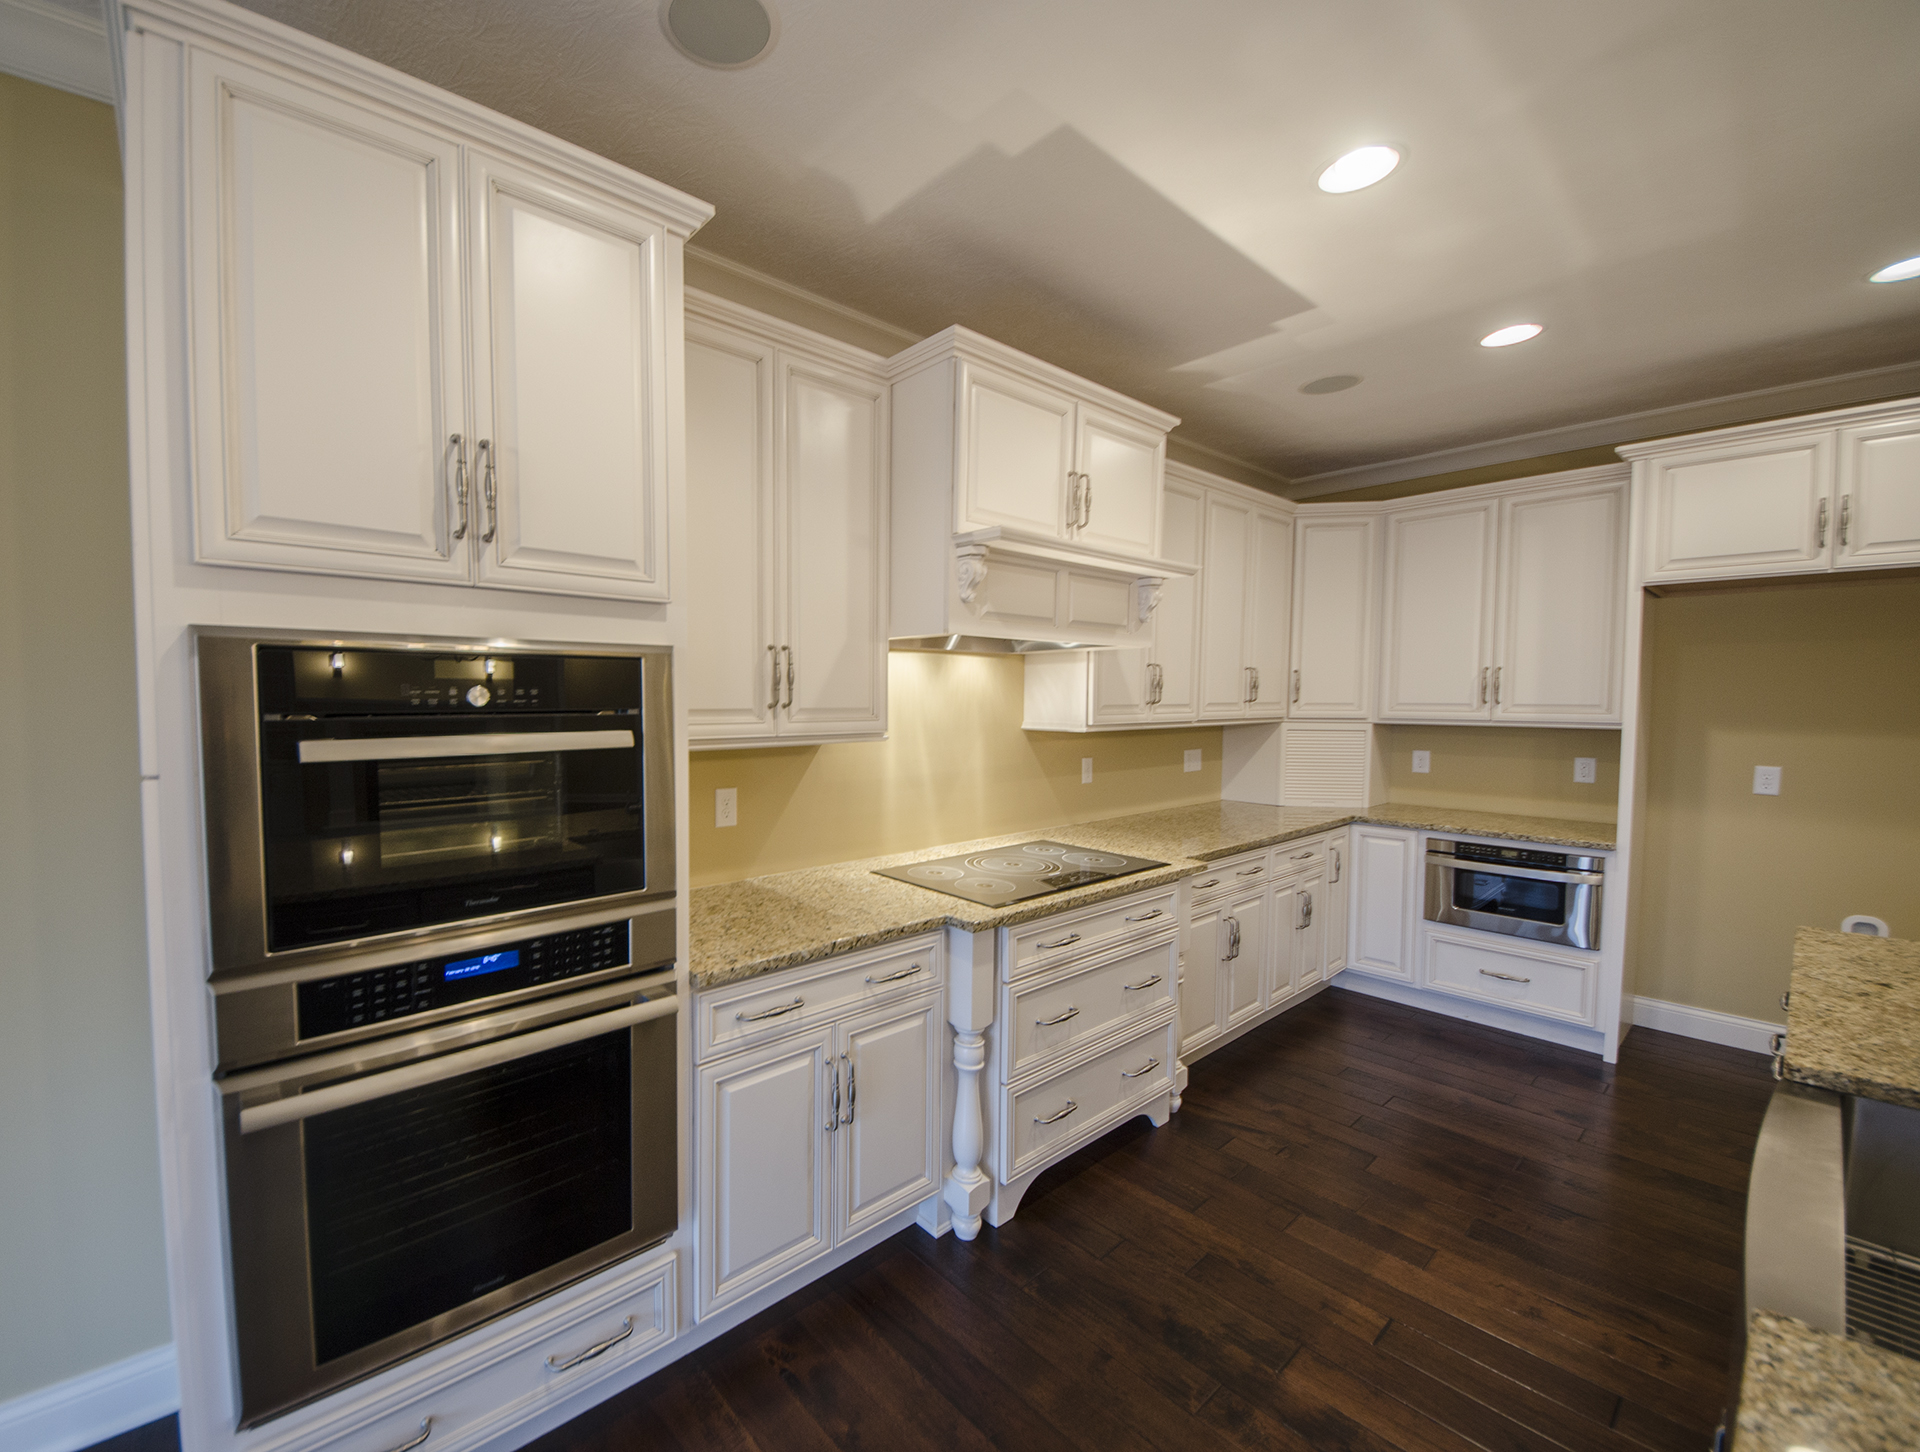 Custom kitchen in a home in Soraya Farms  Built by Design Homes. 9377 Avingnon Way   Centerville  Ohio   Design Homes